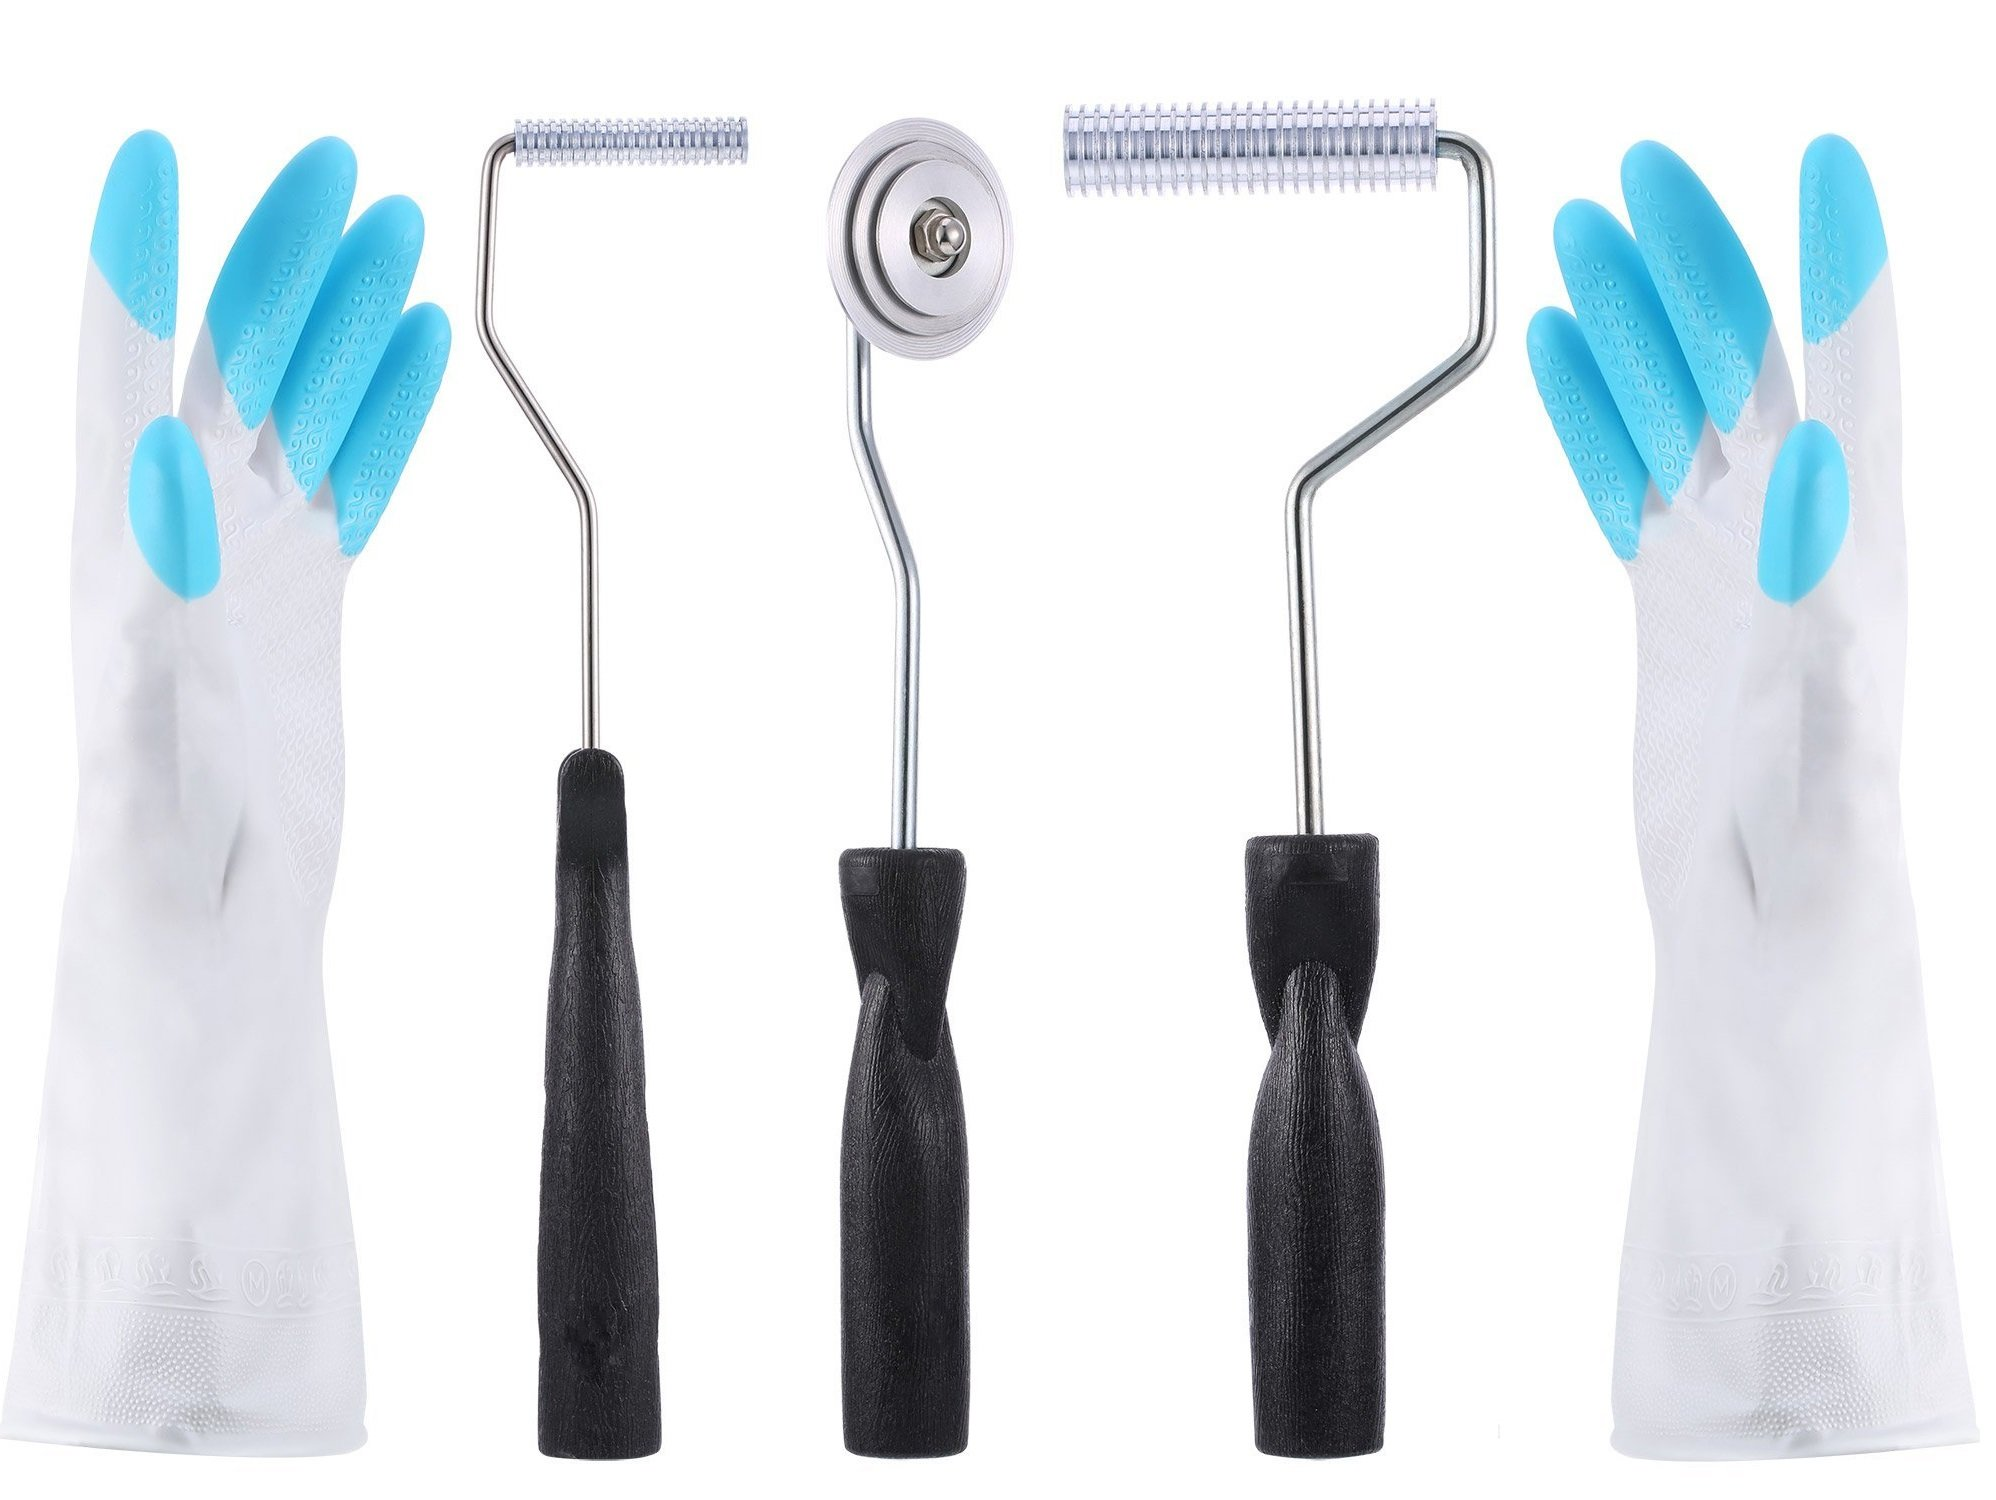 Alwaysuc Bubble Paddle Tool 3 Pcs Fiberglass Laminating Bubble Roller Kit for Mold Resin Composite with 1 Pair Gloves